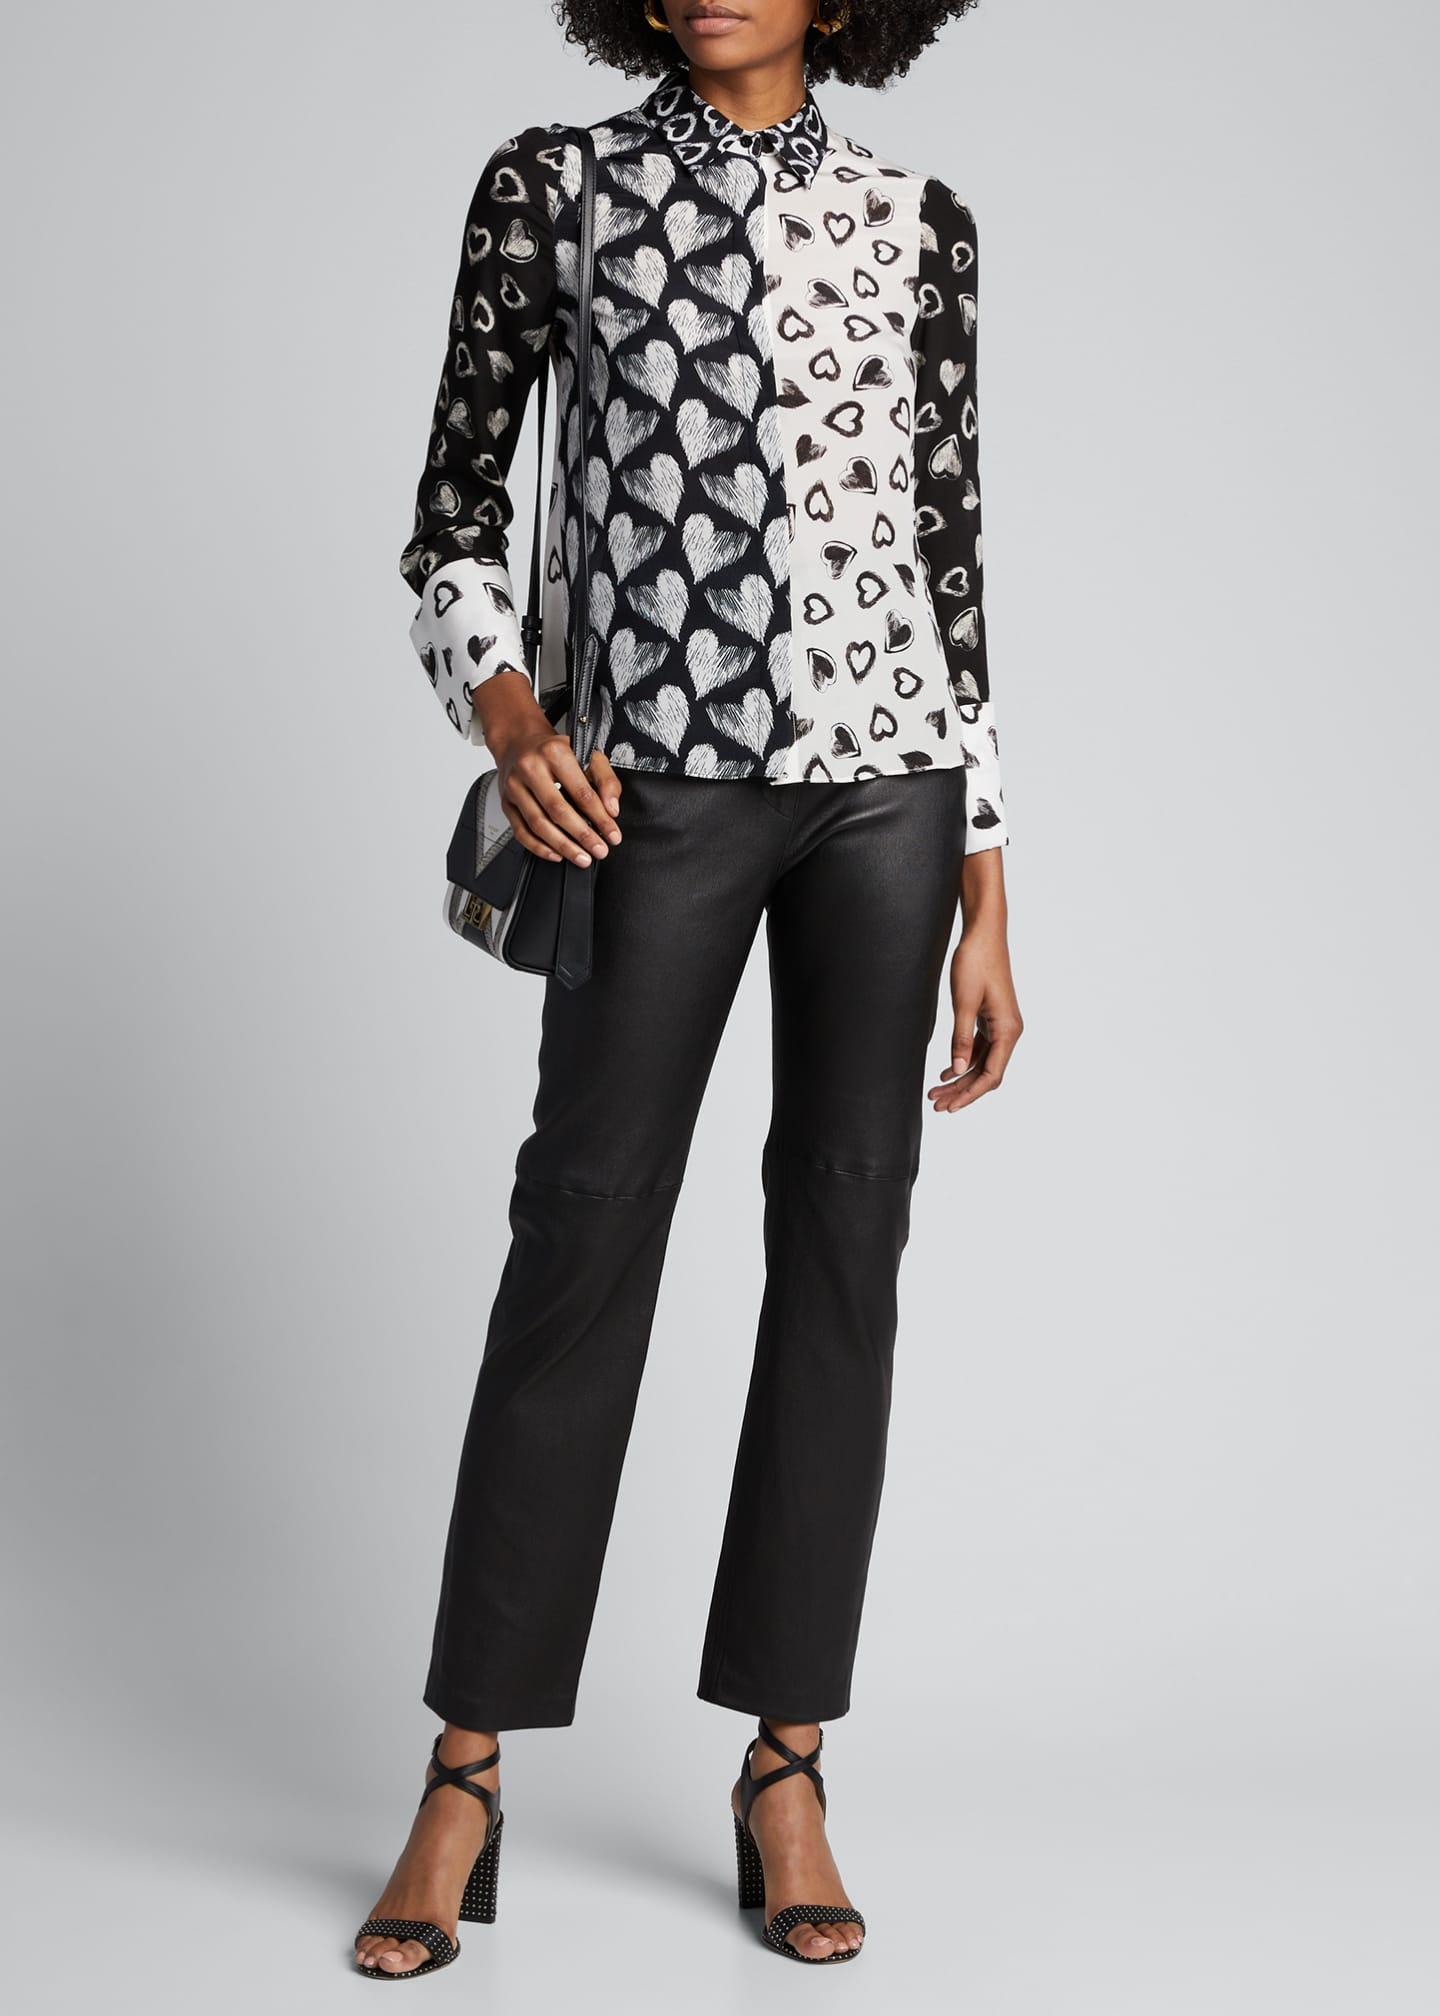 Alice + Olivia Willa Heart-Print Placket Top w/